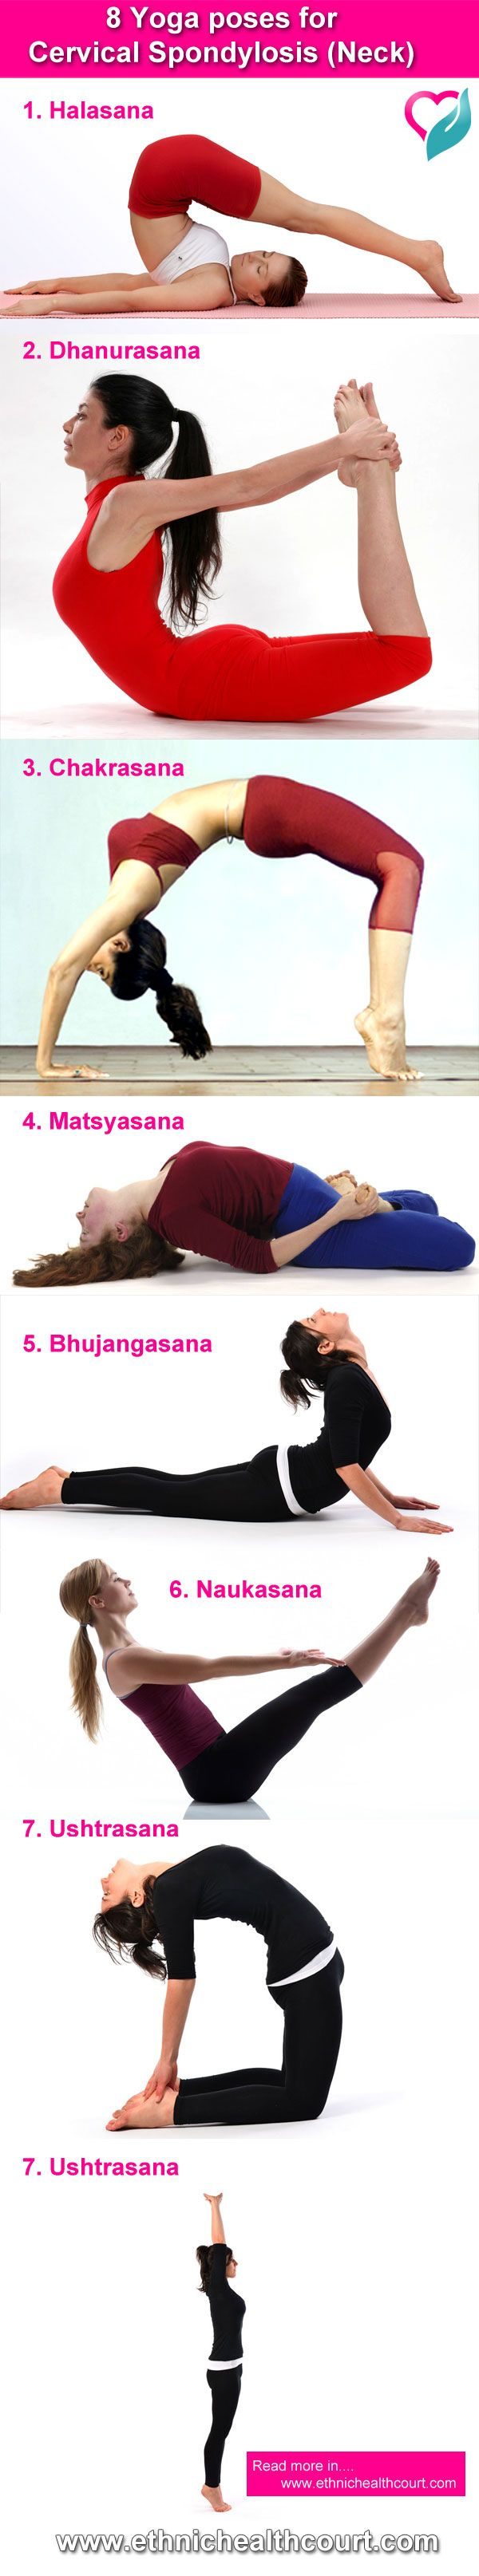 8 Yoga poses for Cervical Spondylosis (Neck) : Cervical spondylosis is a disease of modern lifestyle. I t is brought upon by sitting hunched over computer screens or by reading lying down. If a person has a simple stiff neck, simple yoga exercises of stretching are used to increase the flexibly of neck. Read more : http://ethnichealthcourt.com/2013/04/20/8-yoga-poses-for-cervical-spondylosis-neck/  #Yoga